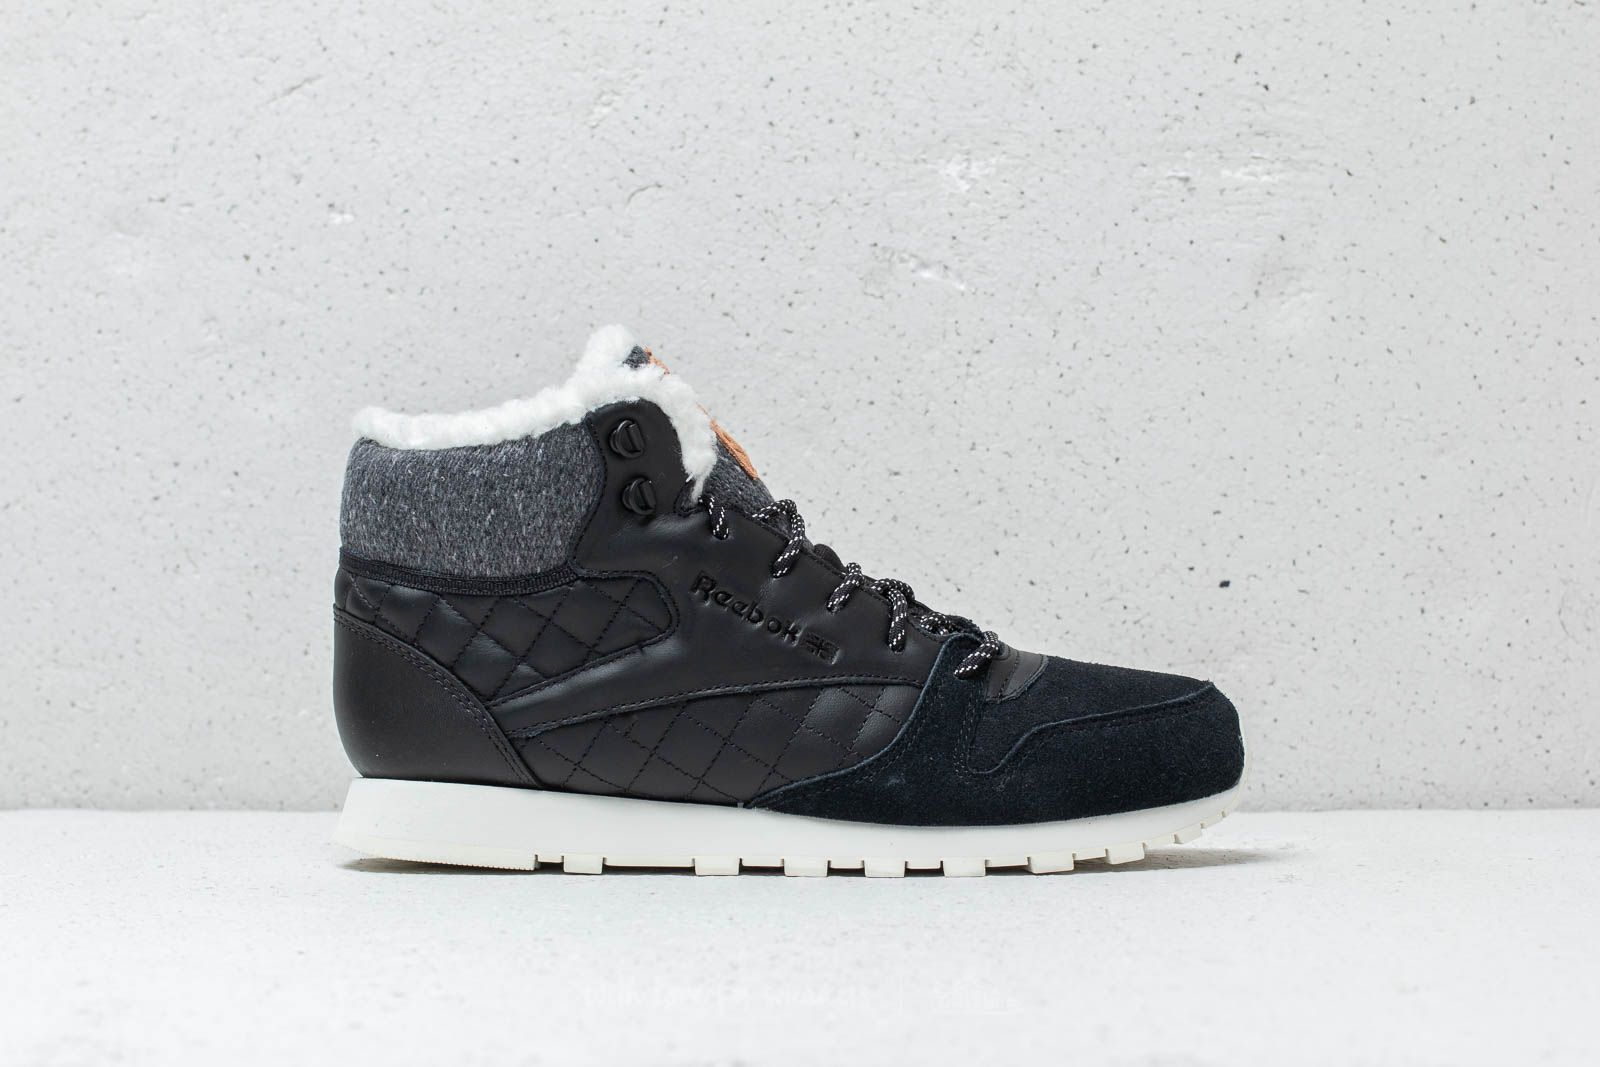 717f956c4547e5 Reebok Classic Leather Arctic Boot Black  Chalk  Camel  Pink at a great  price